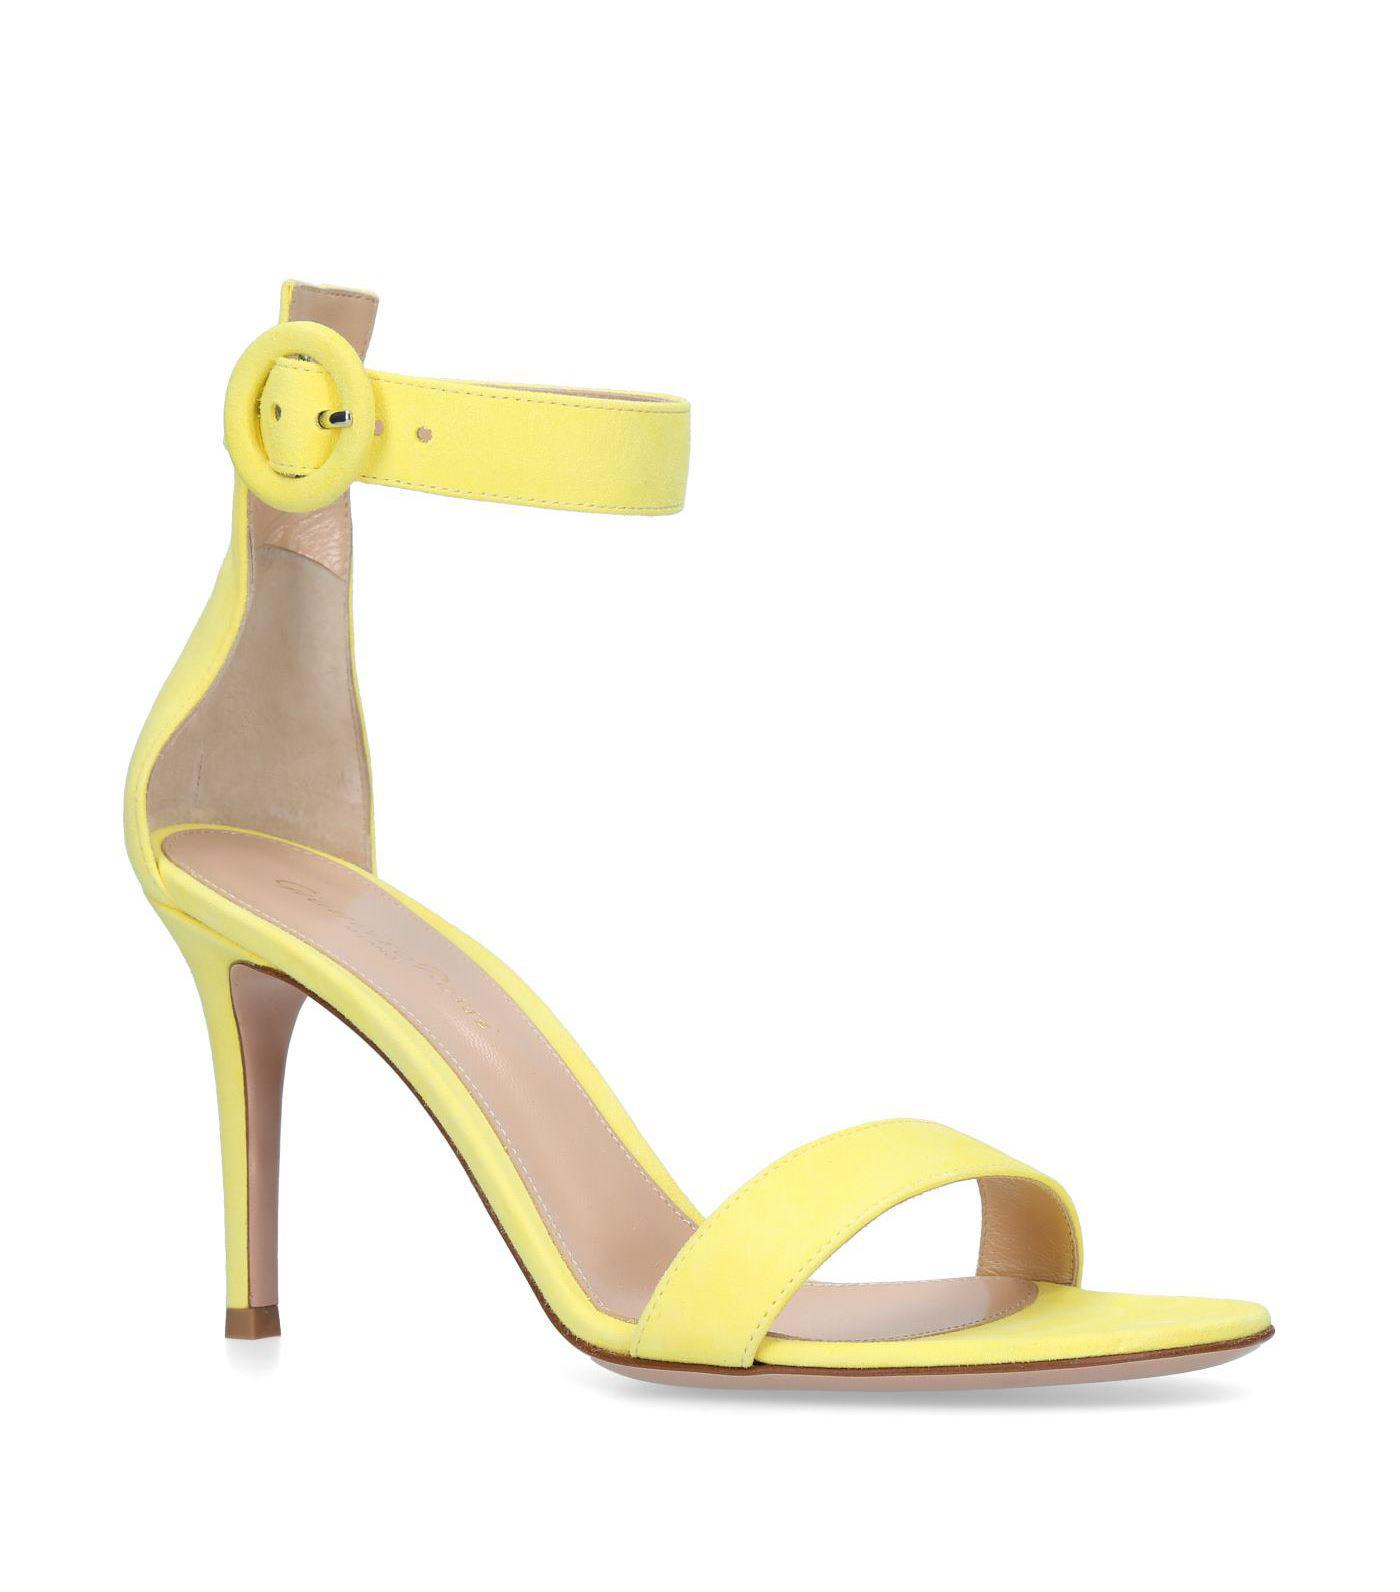 Portofino 85 Suede Sandals - Yellow Gianvito Rossi Cheap Sale How Much Sale Good Selling Cheap Sale Footlocker Finishline Inexpensive Free Shipping Pictures eFtBUOzOf